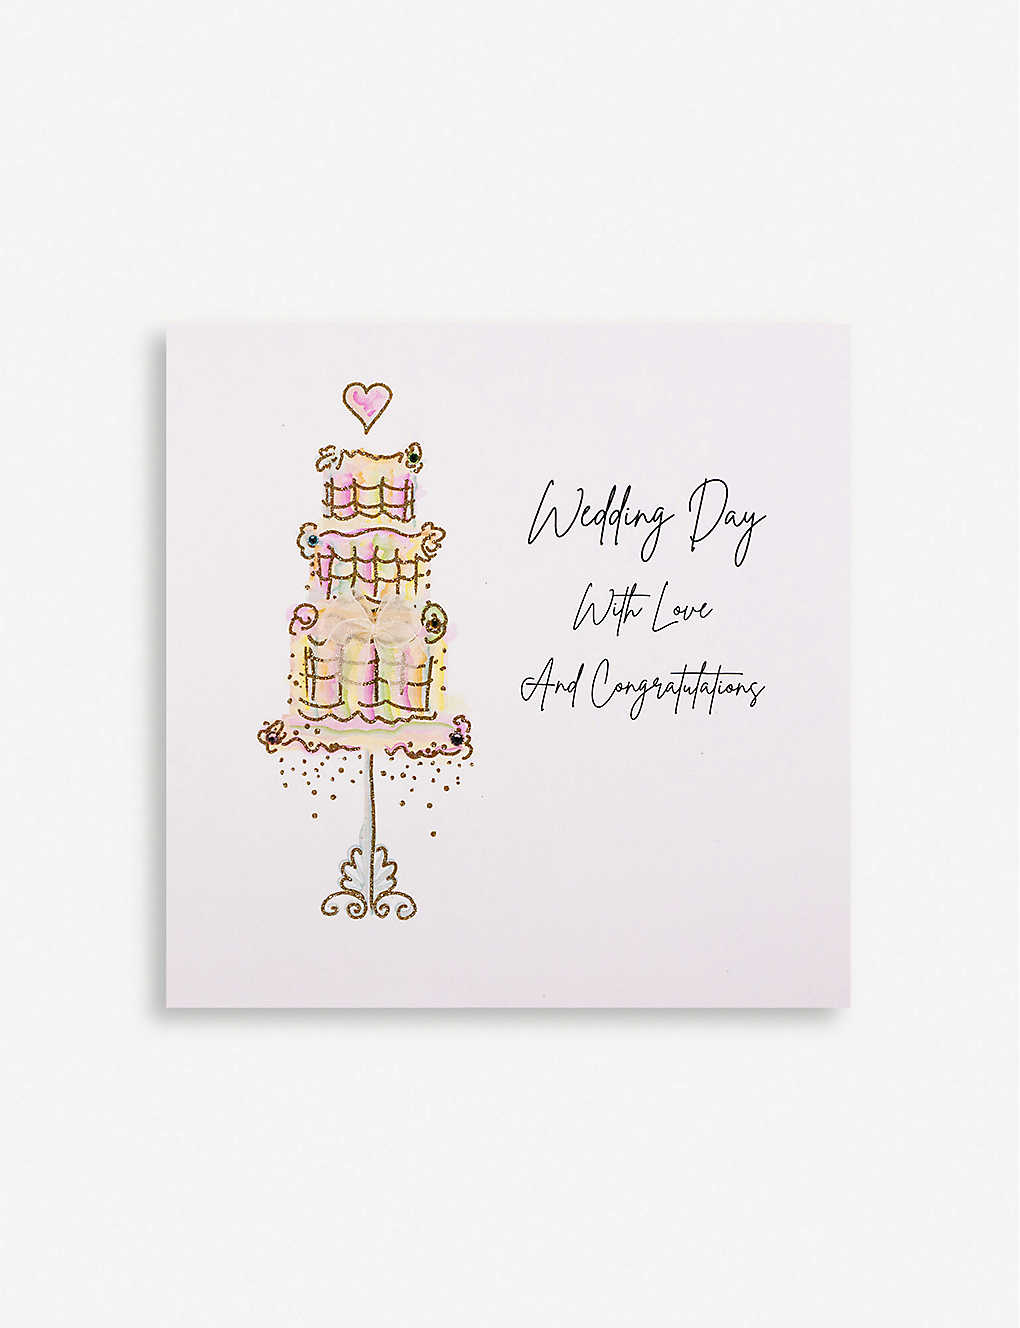 FIVE DOLLAR SHAKE: Wedding Day with Love greetings card 16.5cm x 16.5cm